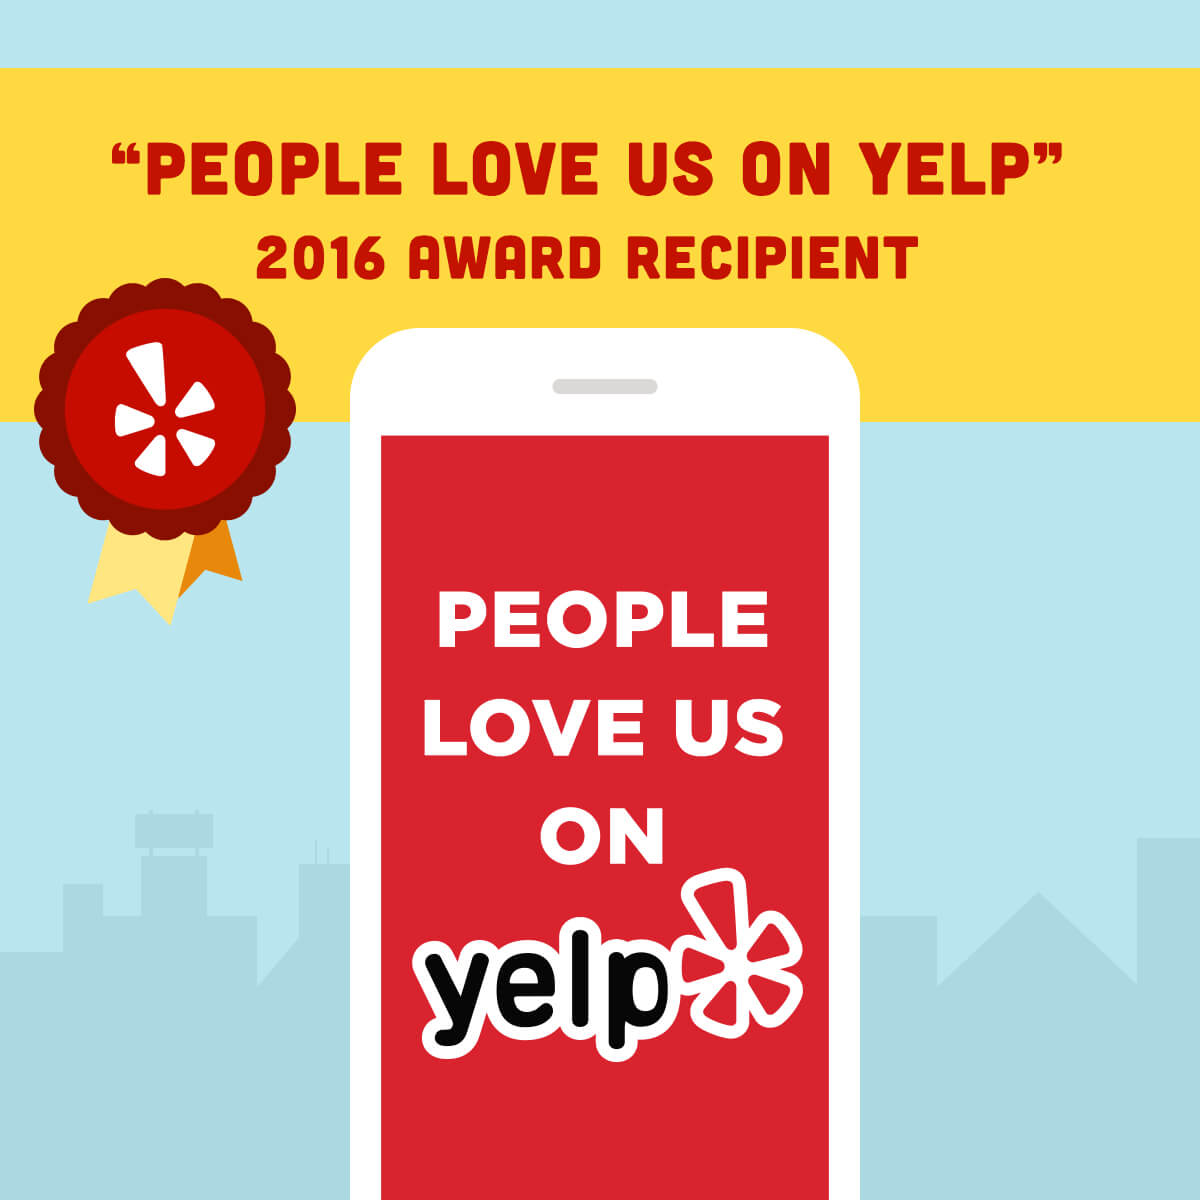 2016 Yelp Award Recipient